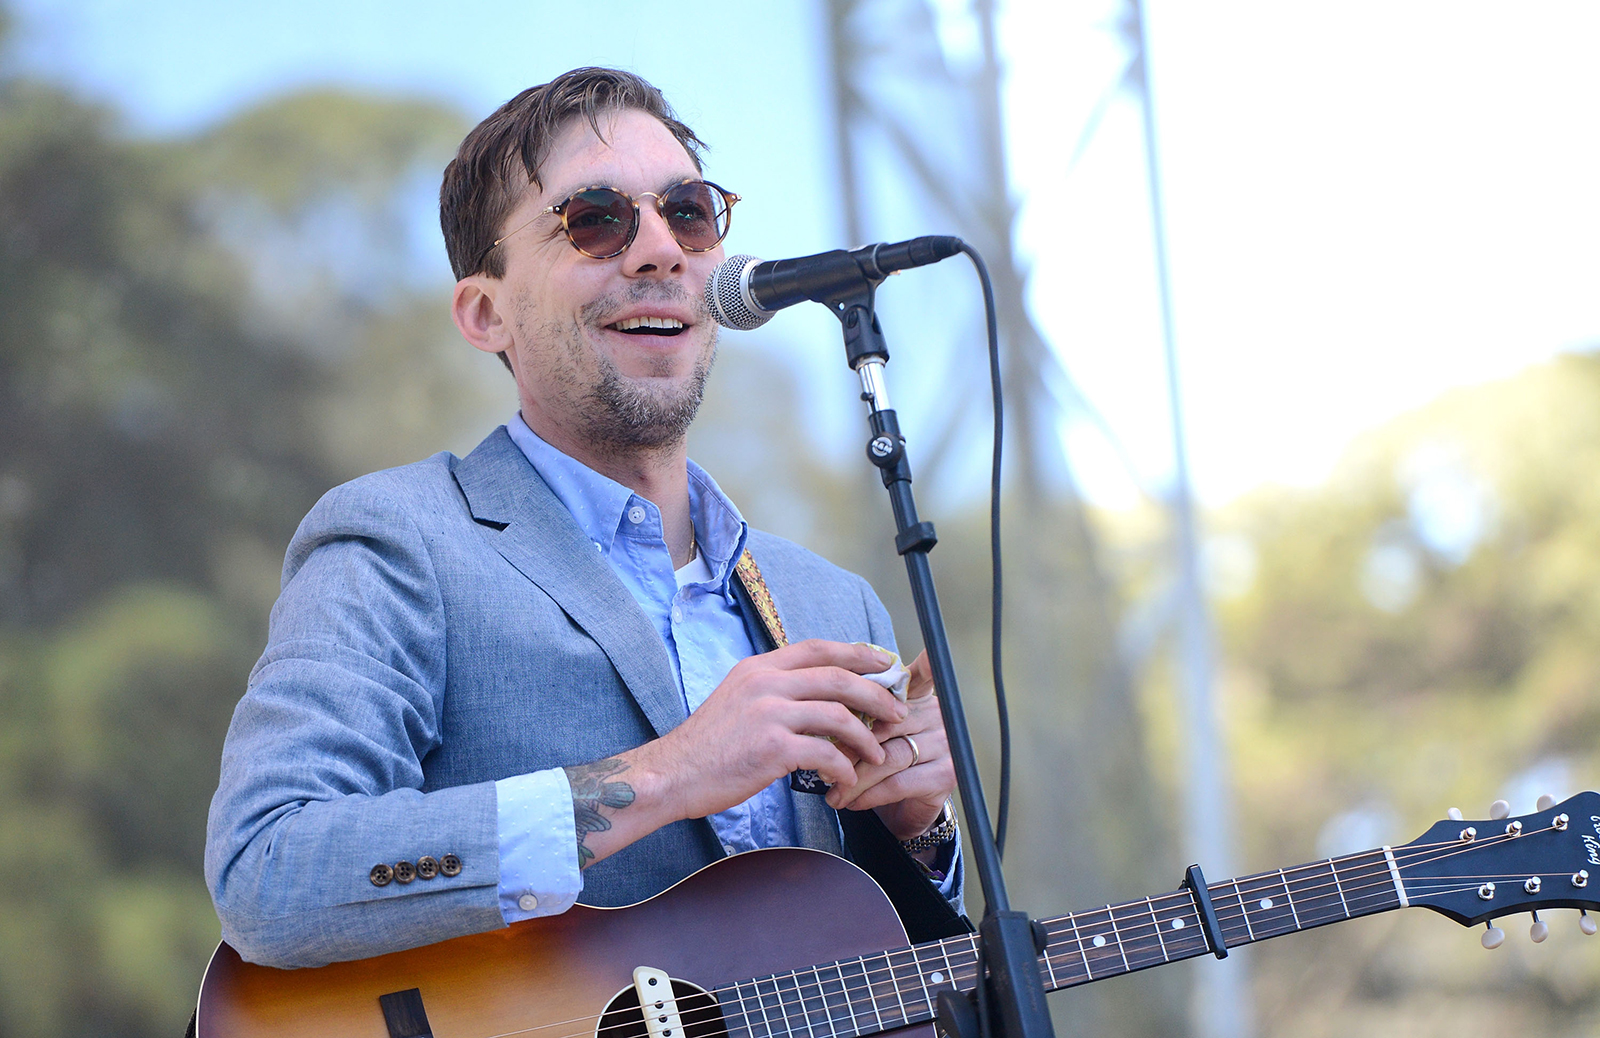 Singer Justin Townes Earle dies at 38